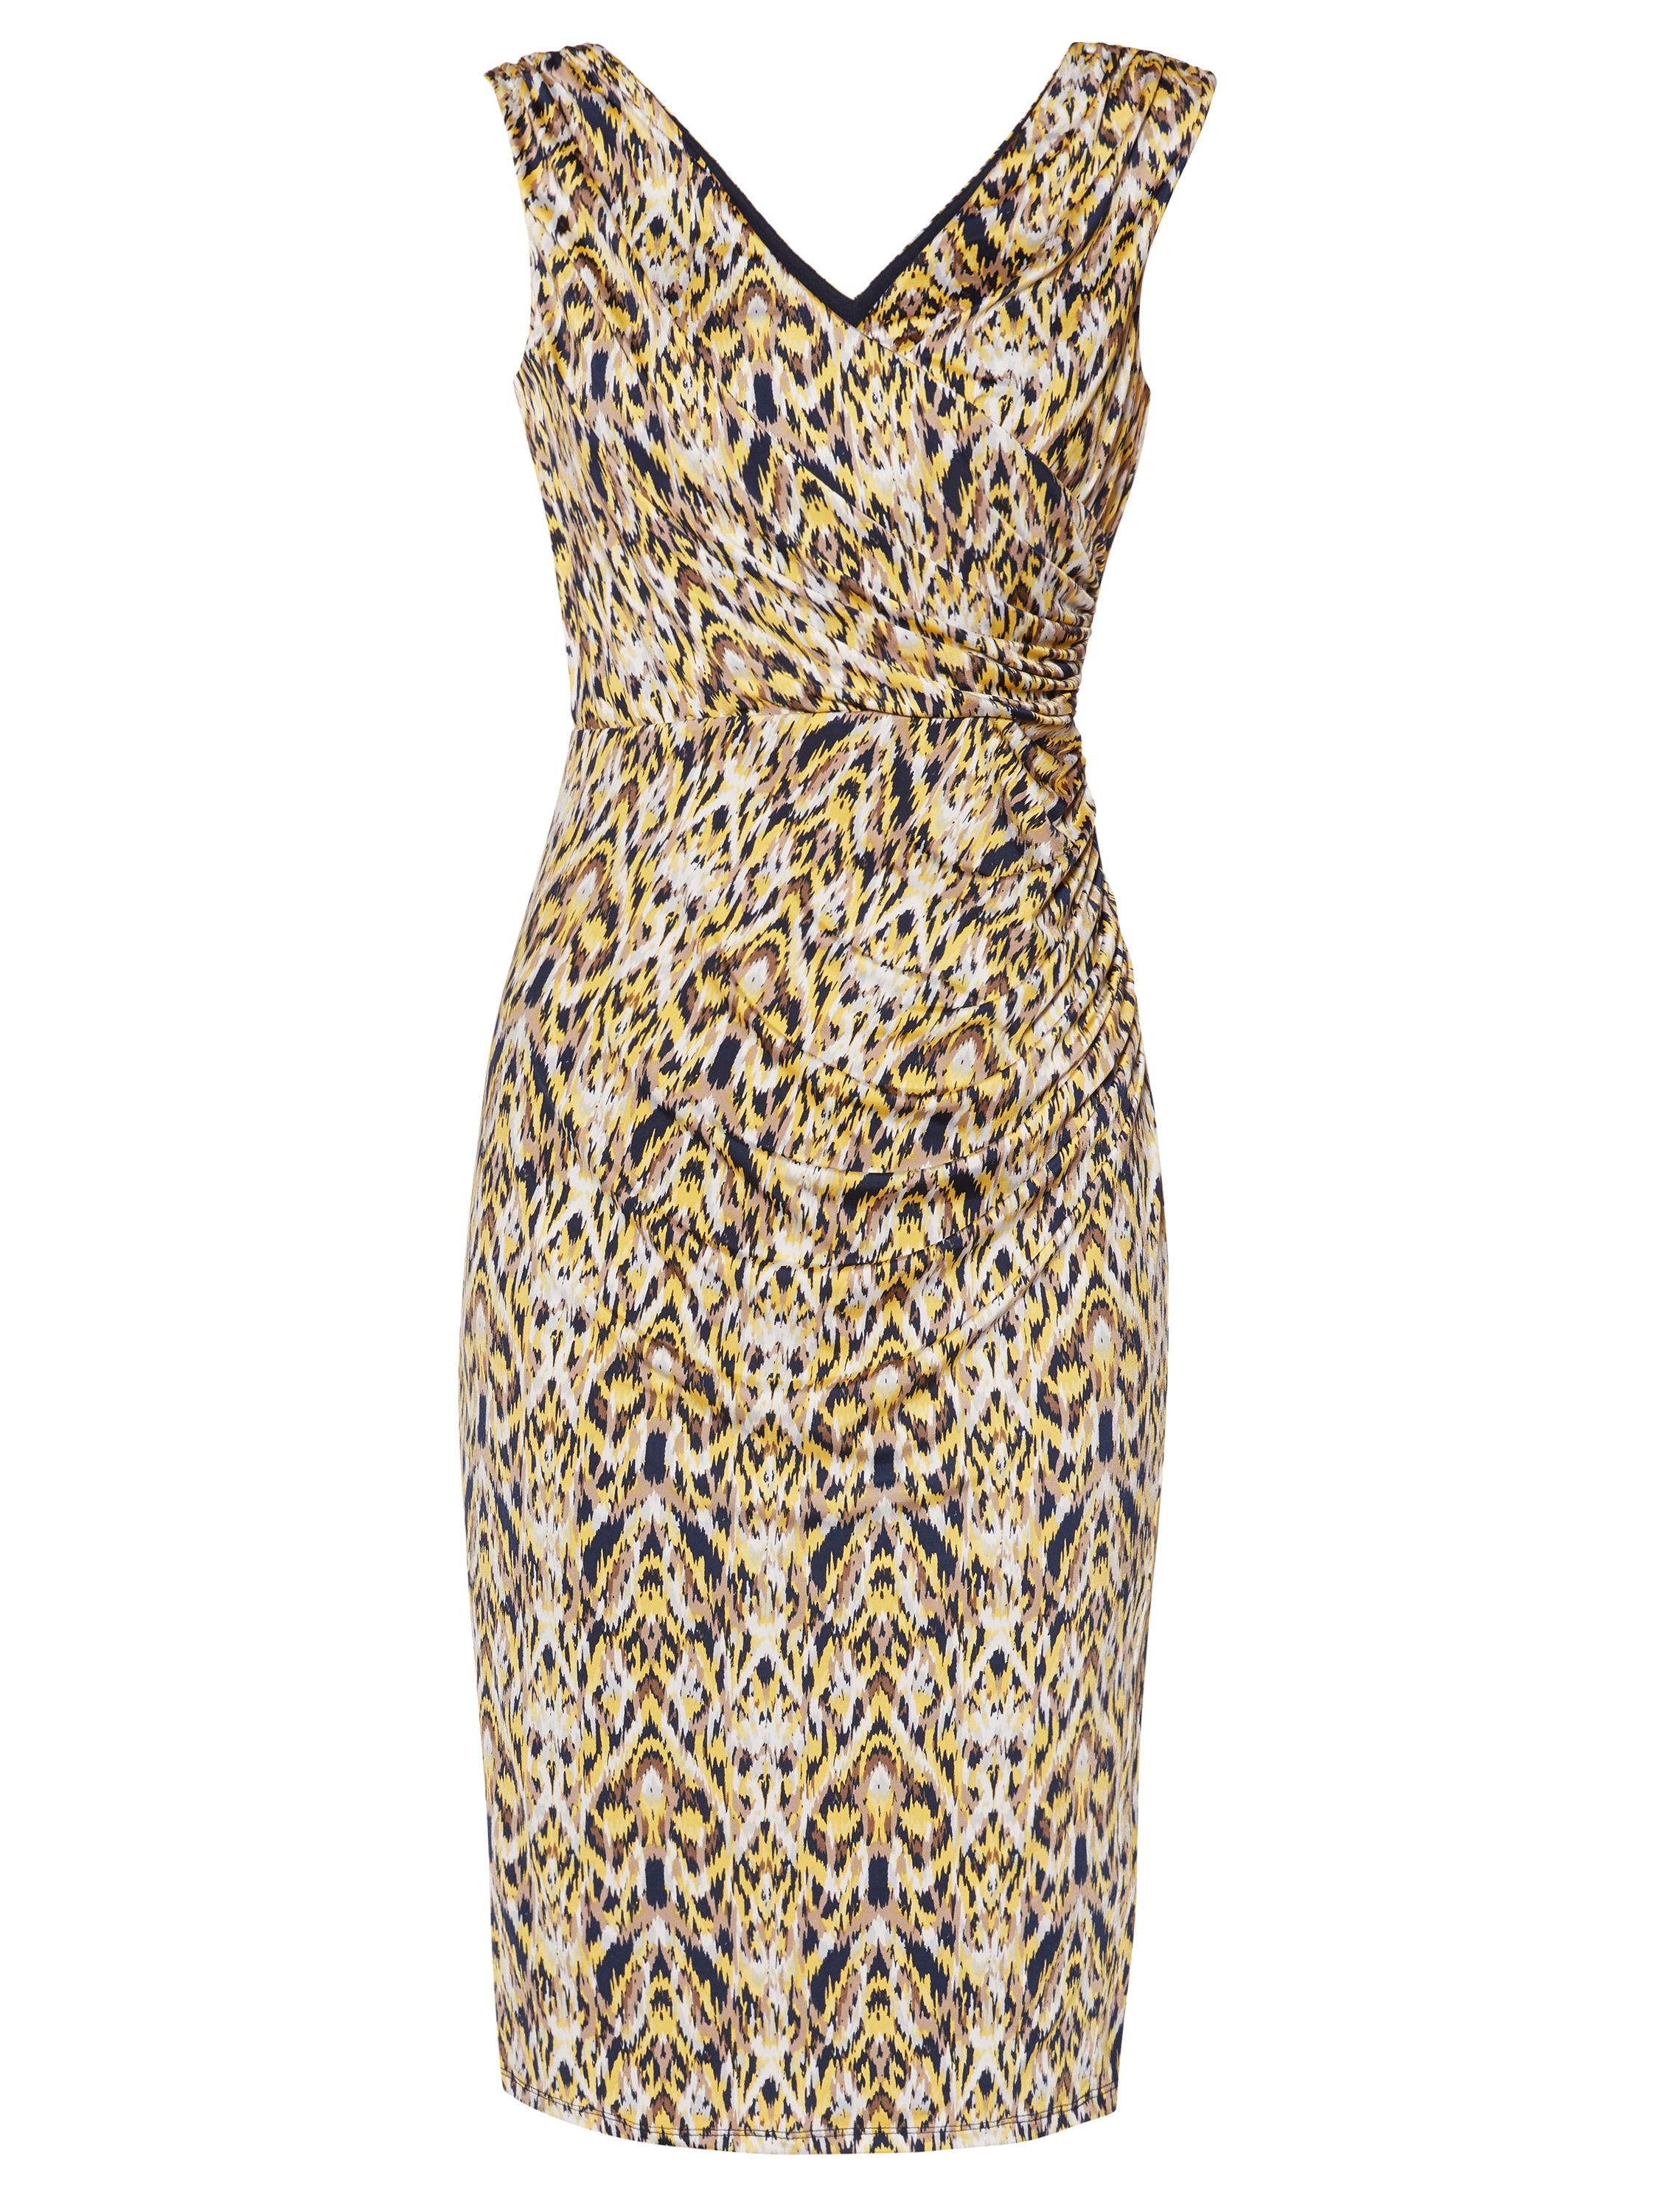 Gina Bacconi Yellow Blue Print Jersey Dress, Yellow